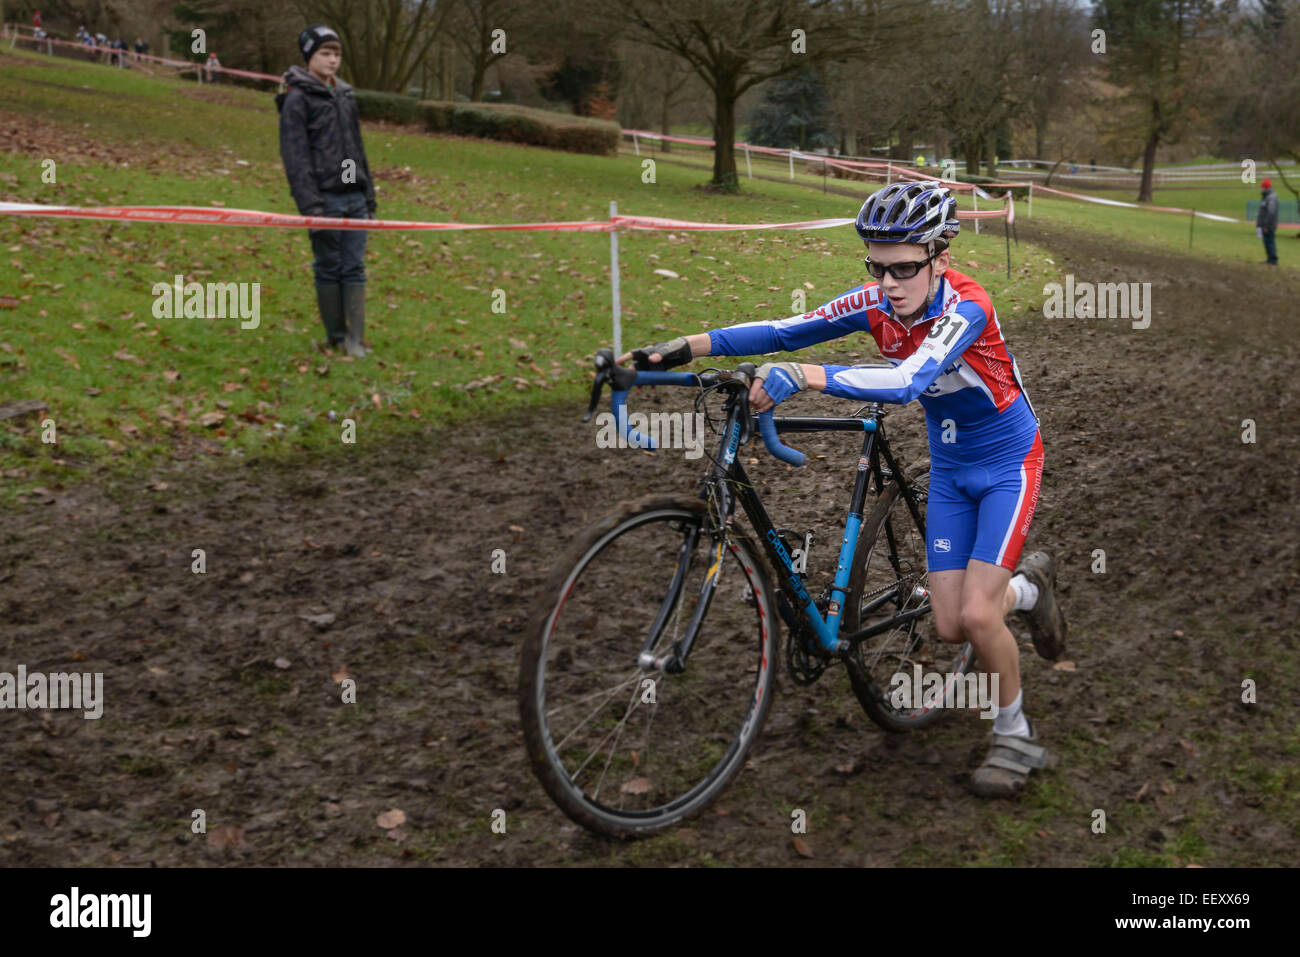 A young male competitor pushes his bike through a muddy section during a cyclo-cross race. Horizontal format with - Stock Image